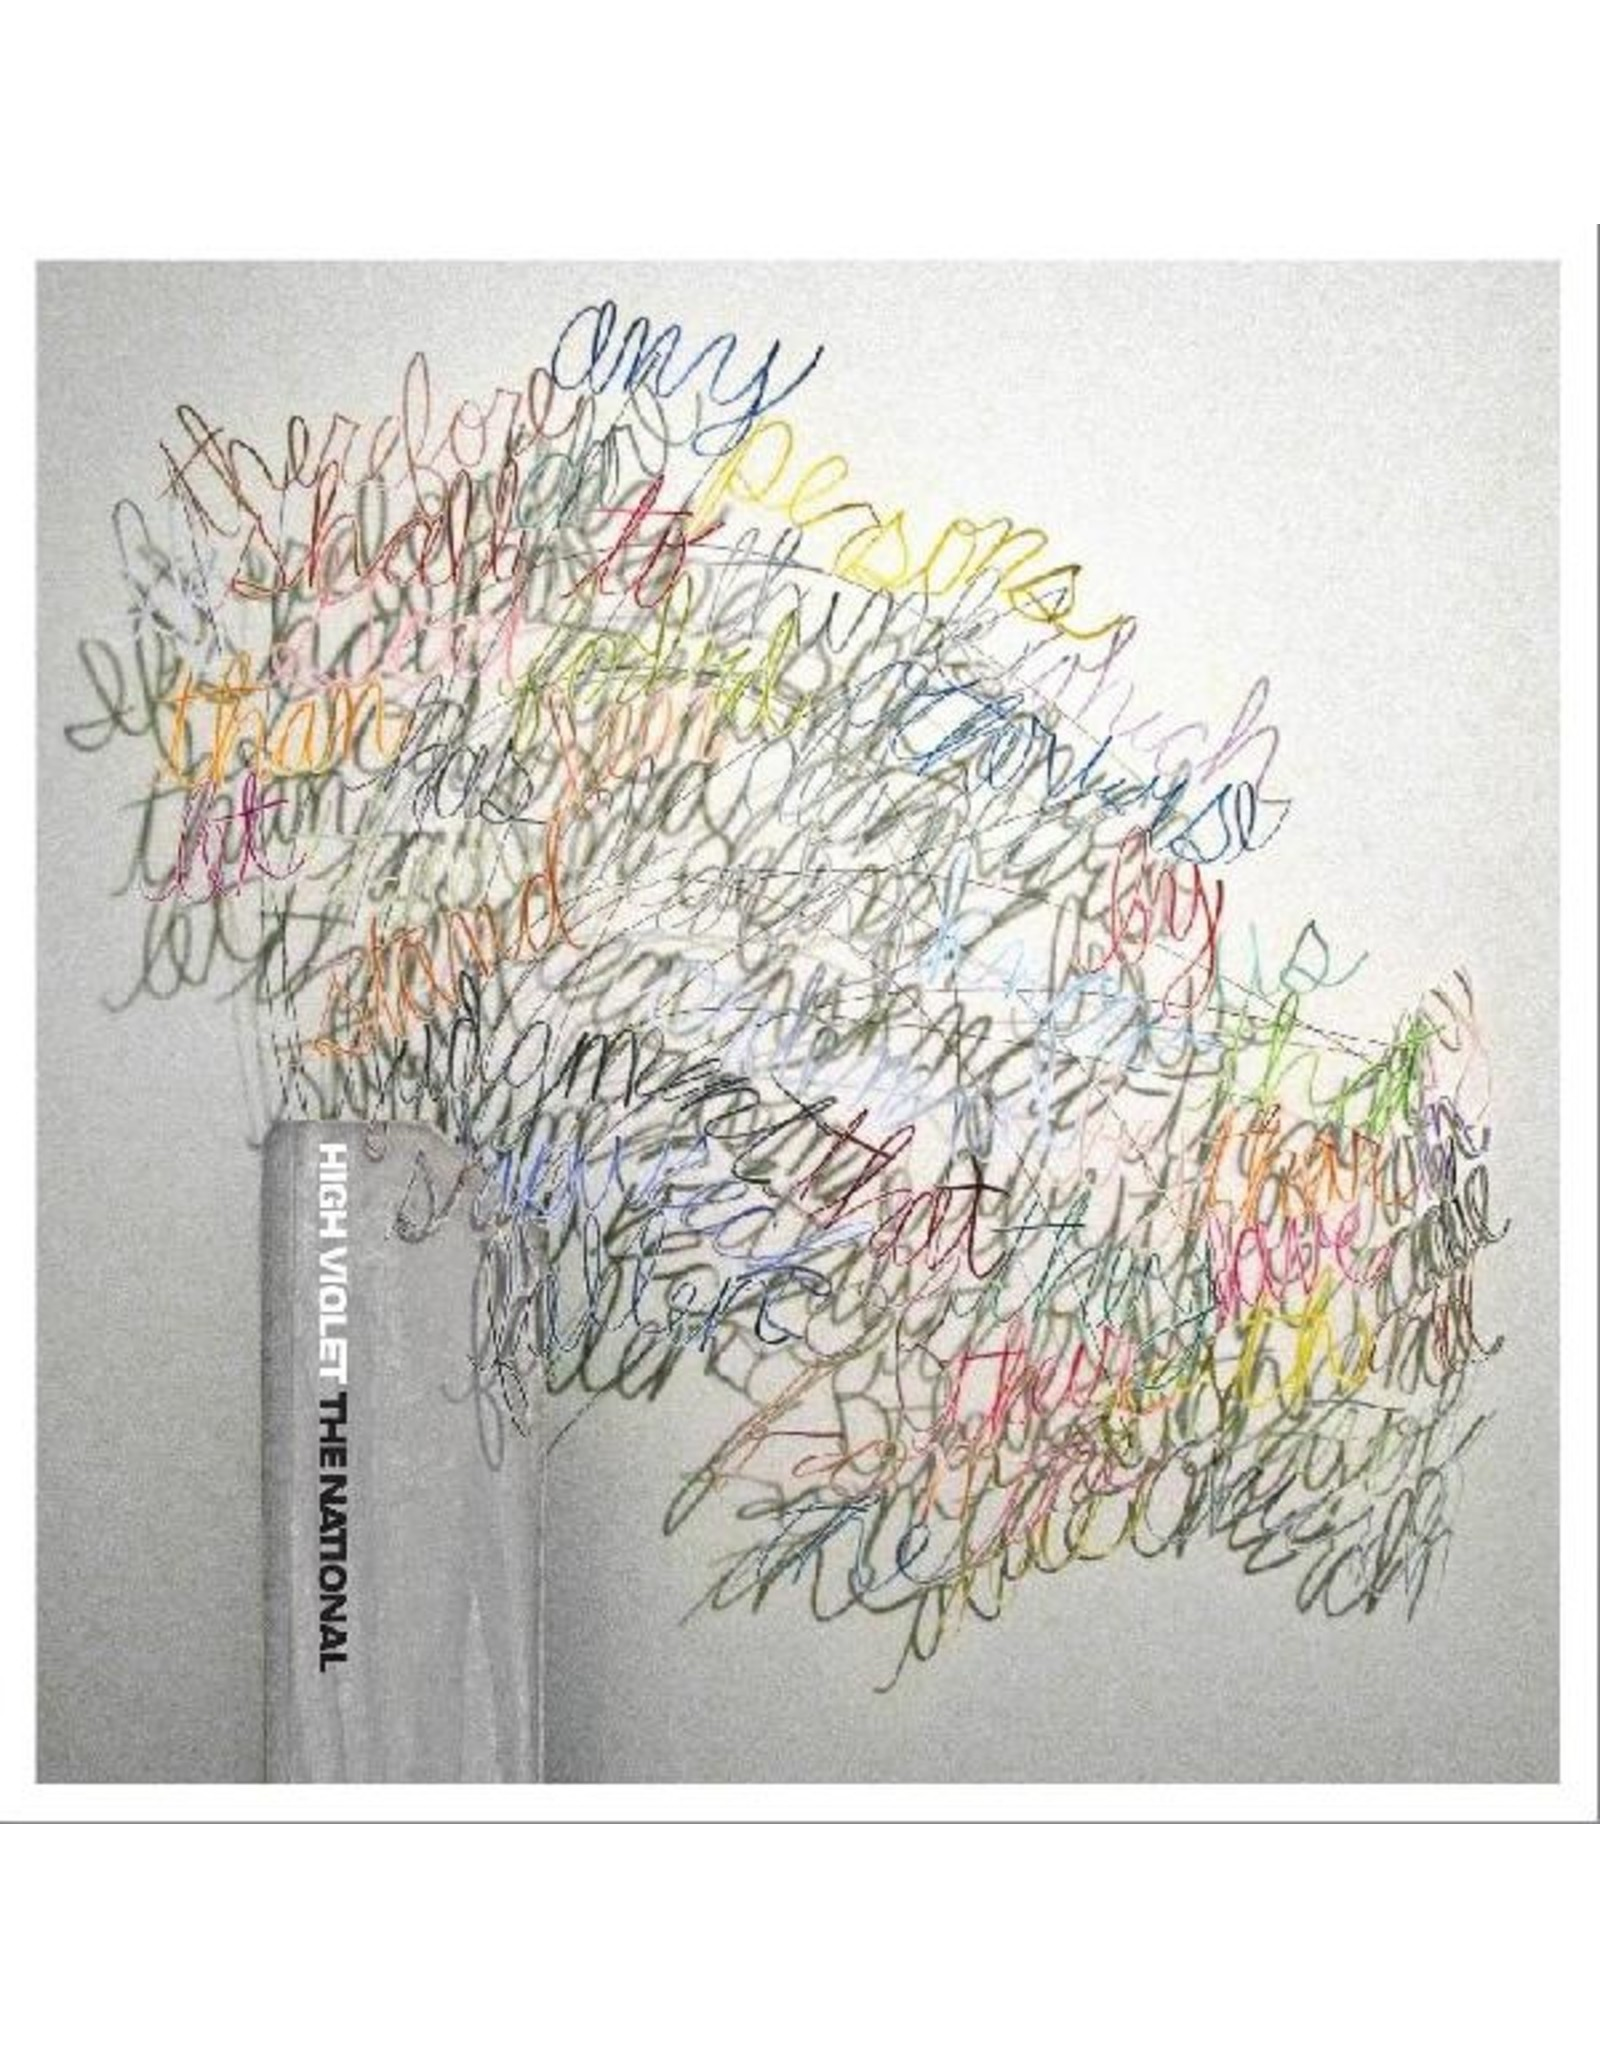 New Vinyl The National - High Violet (Expanded, Colored) 3LP